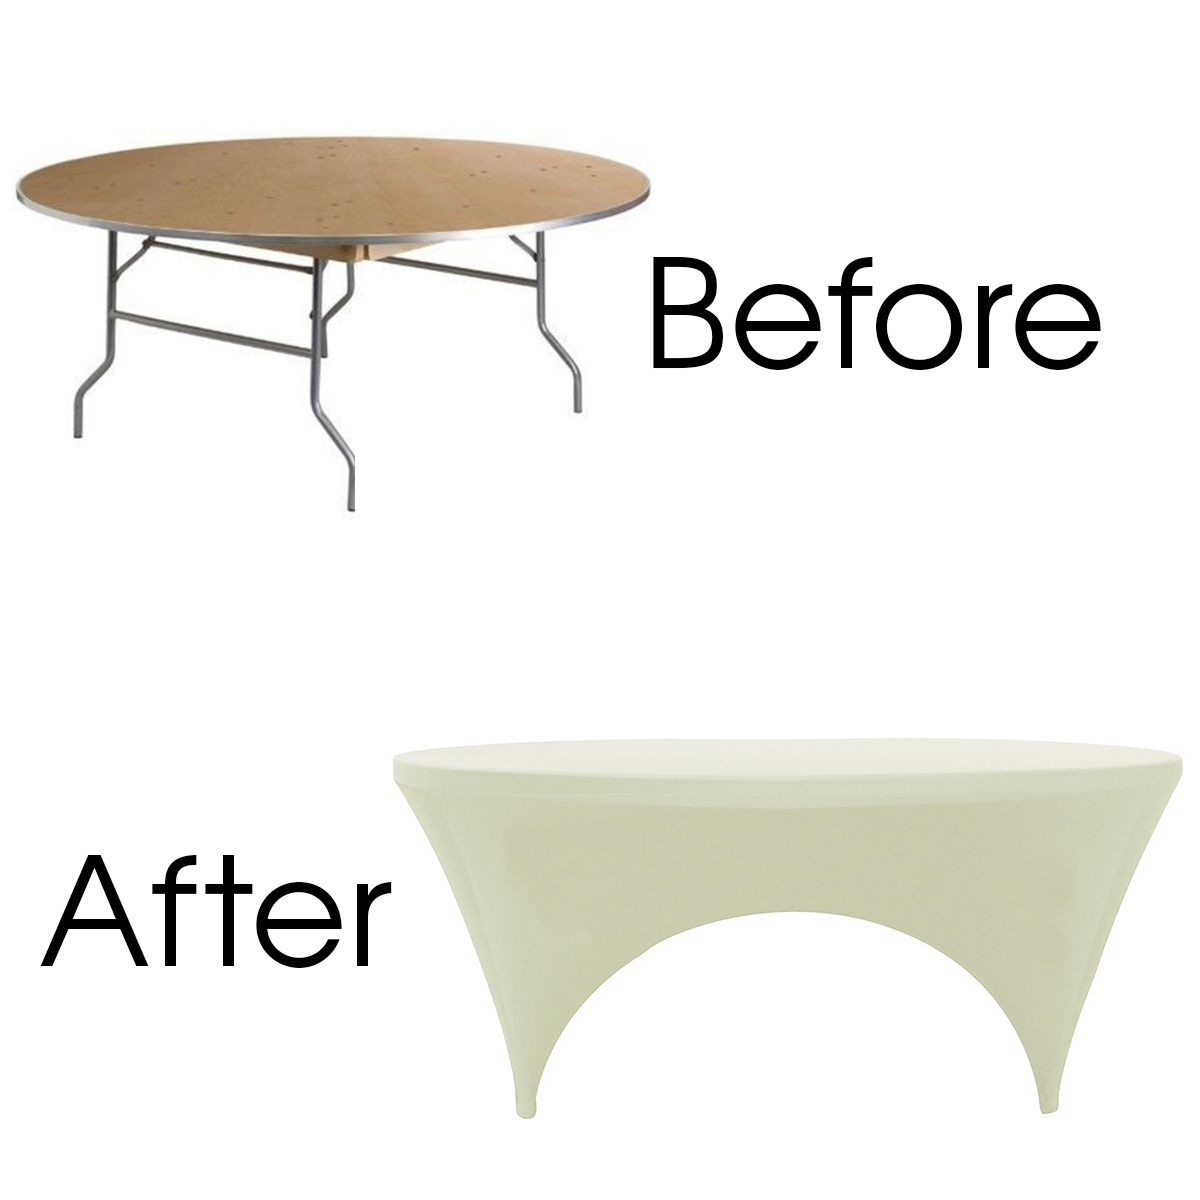 stretch-spandex-6ft-round-table-covers-ivory-sides-open-before-after.jpg